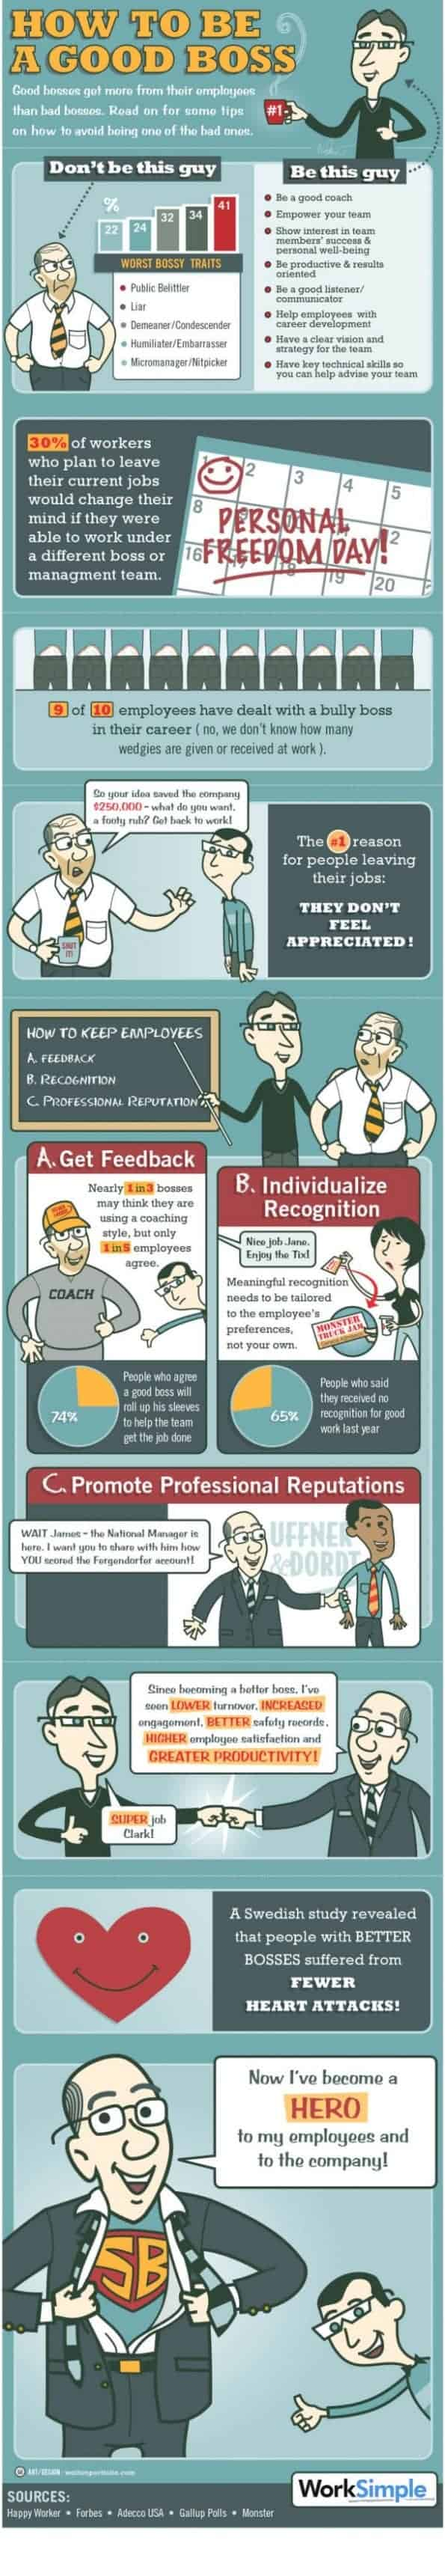 how to be a good boss infographic daily infographic how to be a good boss